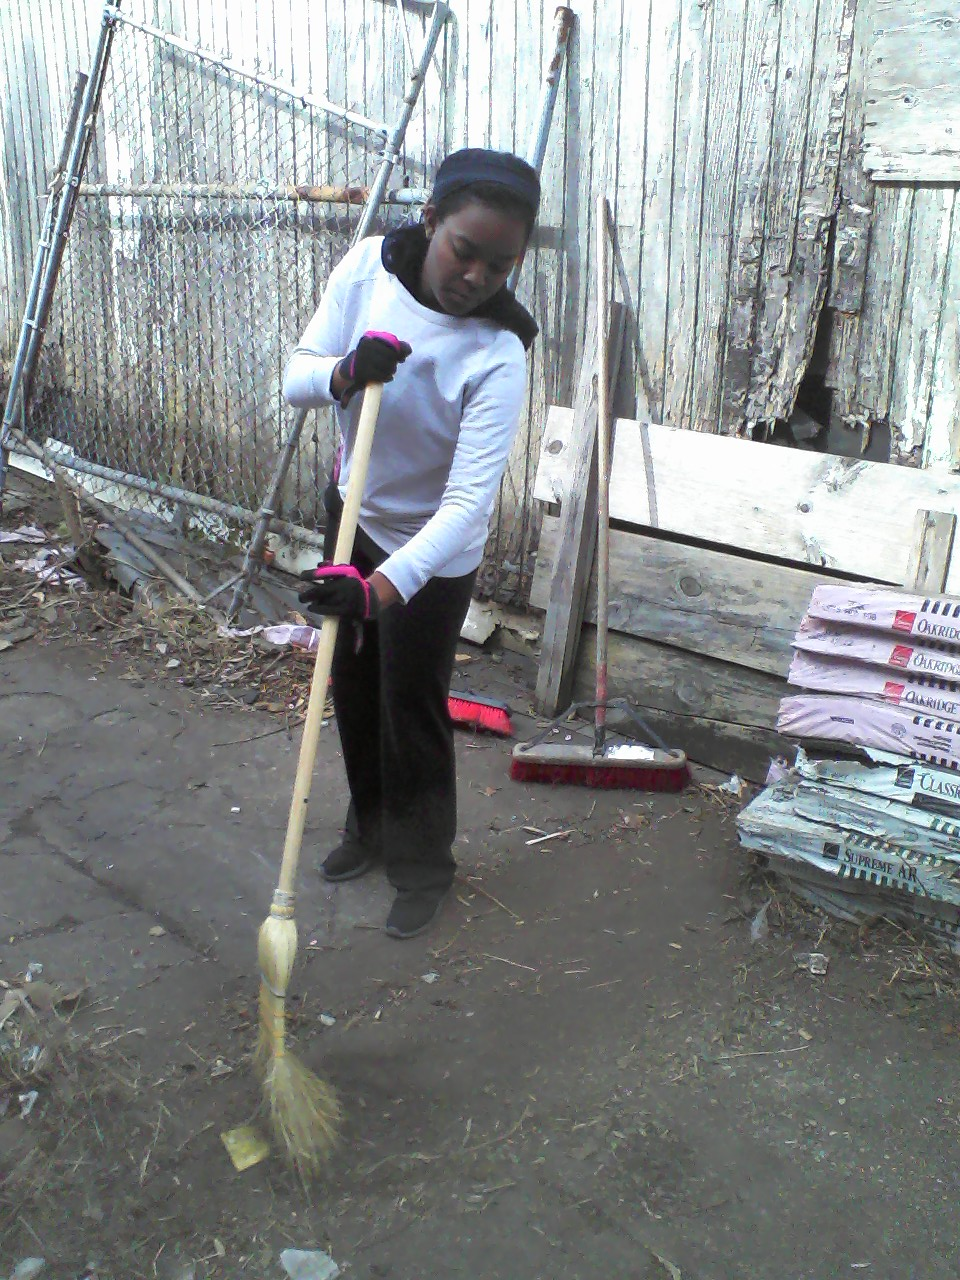 Sweeping her cares away.